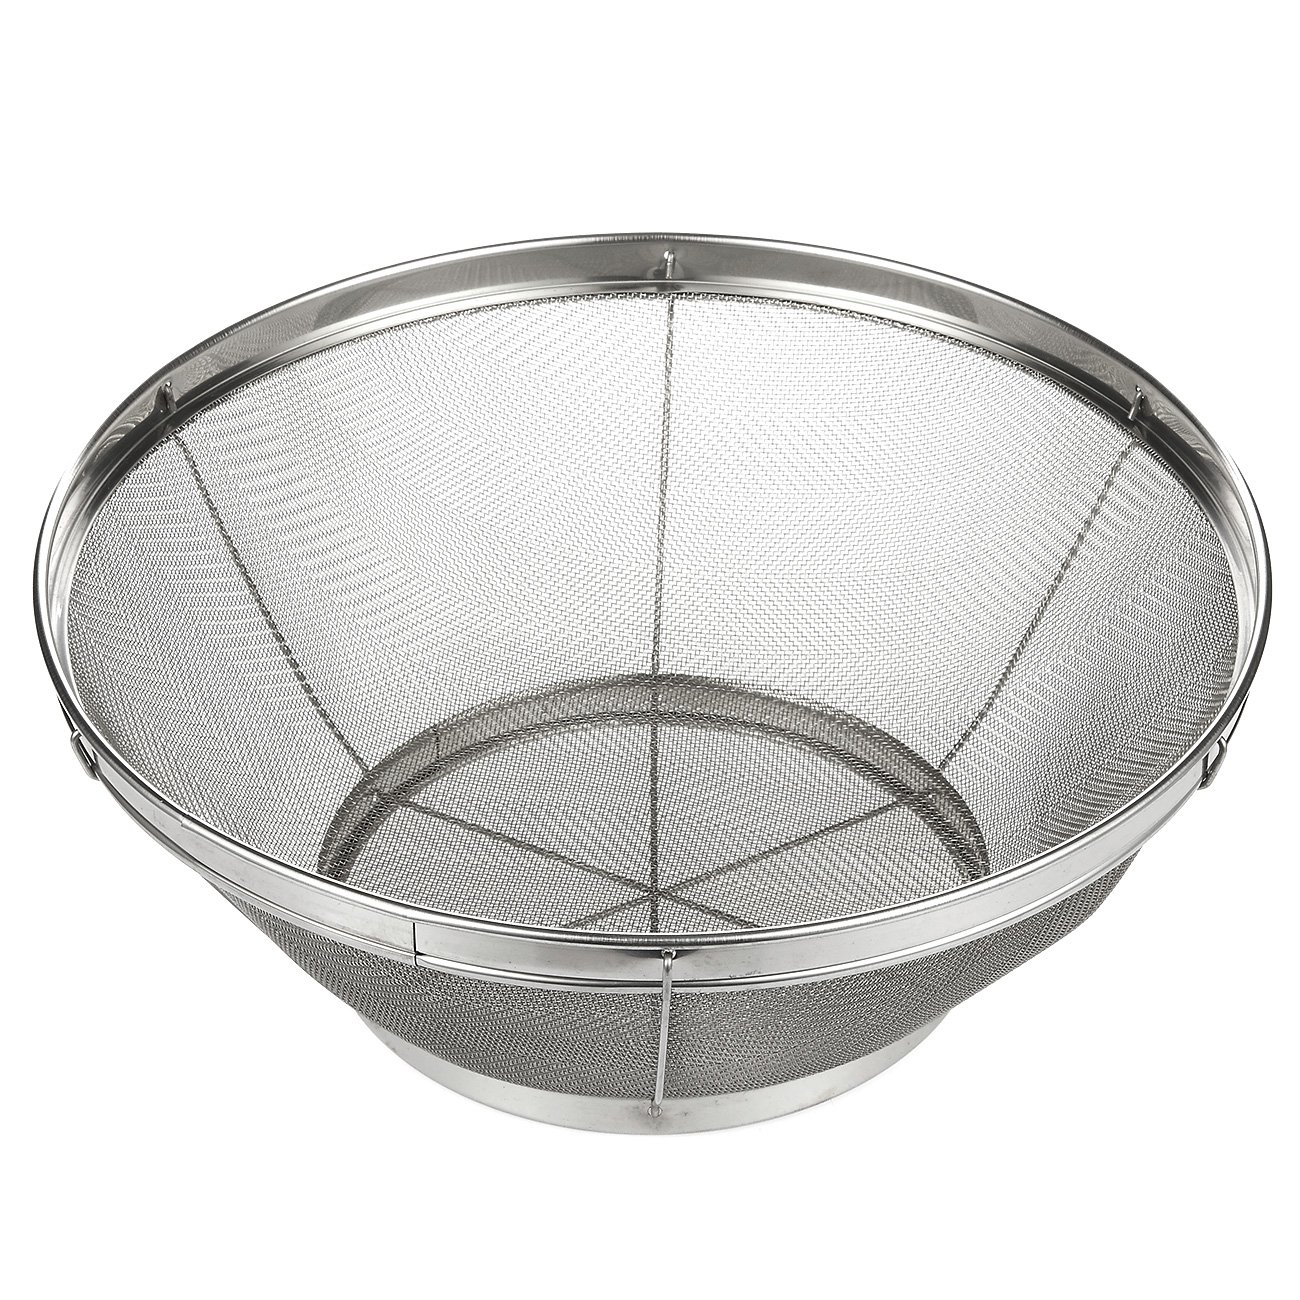 Stainless Steel Colander/Mesh Colander Strainer Basket - For Kitchen Straining, Draining, Salad, Spaghetti and Noodles - 10.25 x 4 Inches